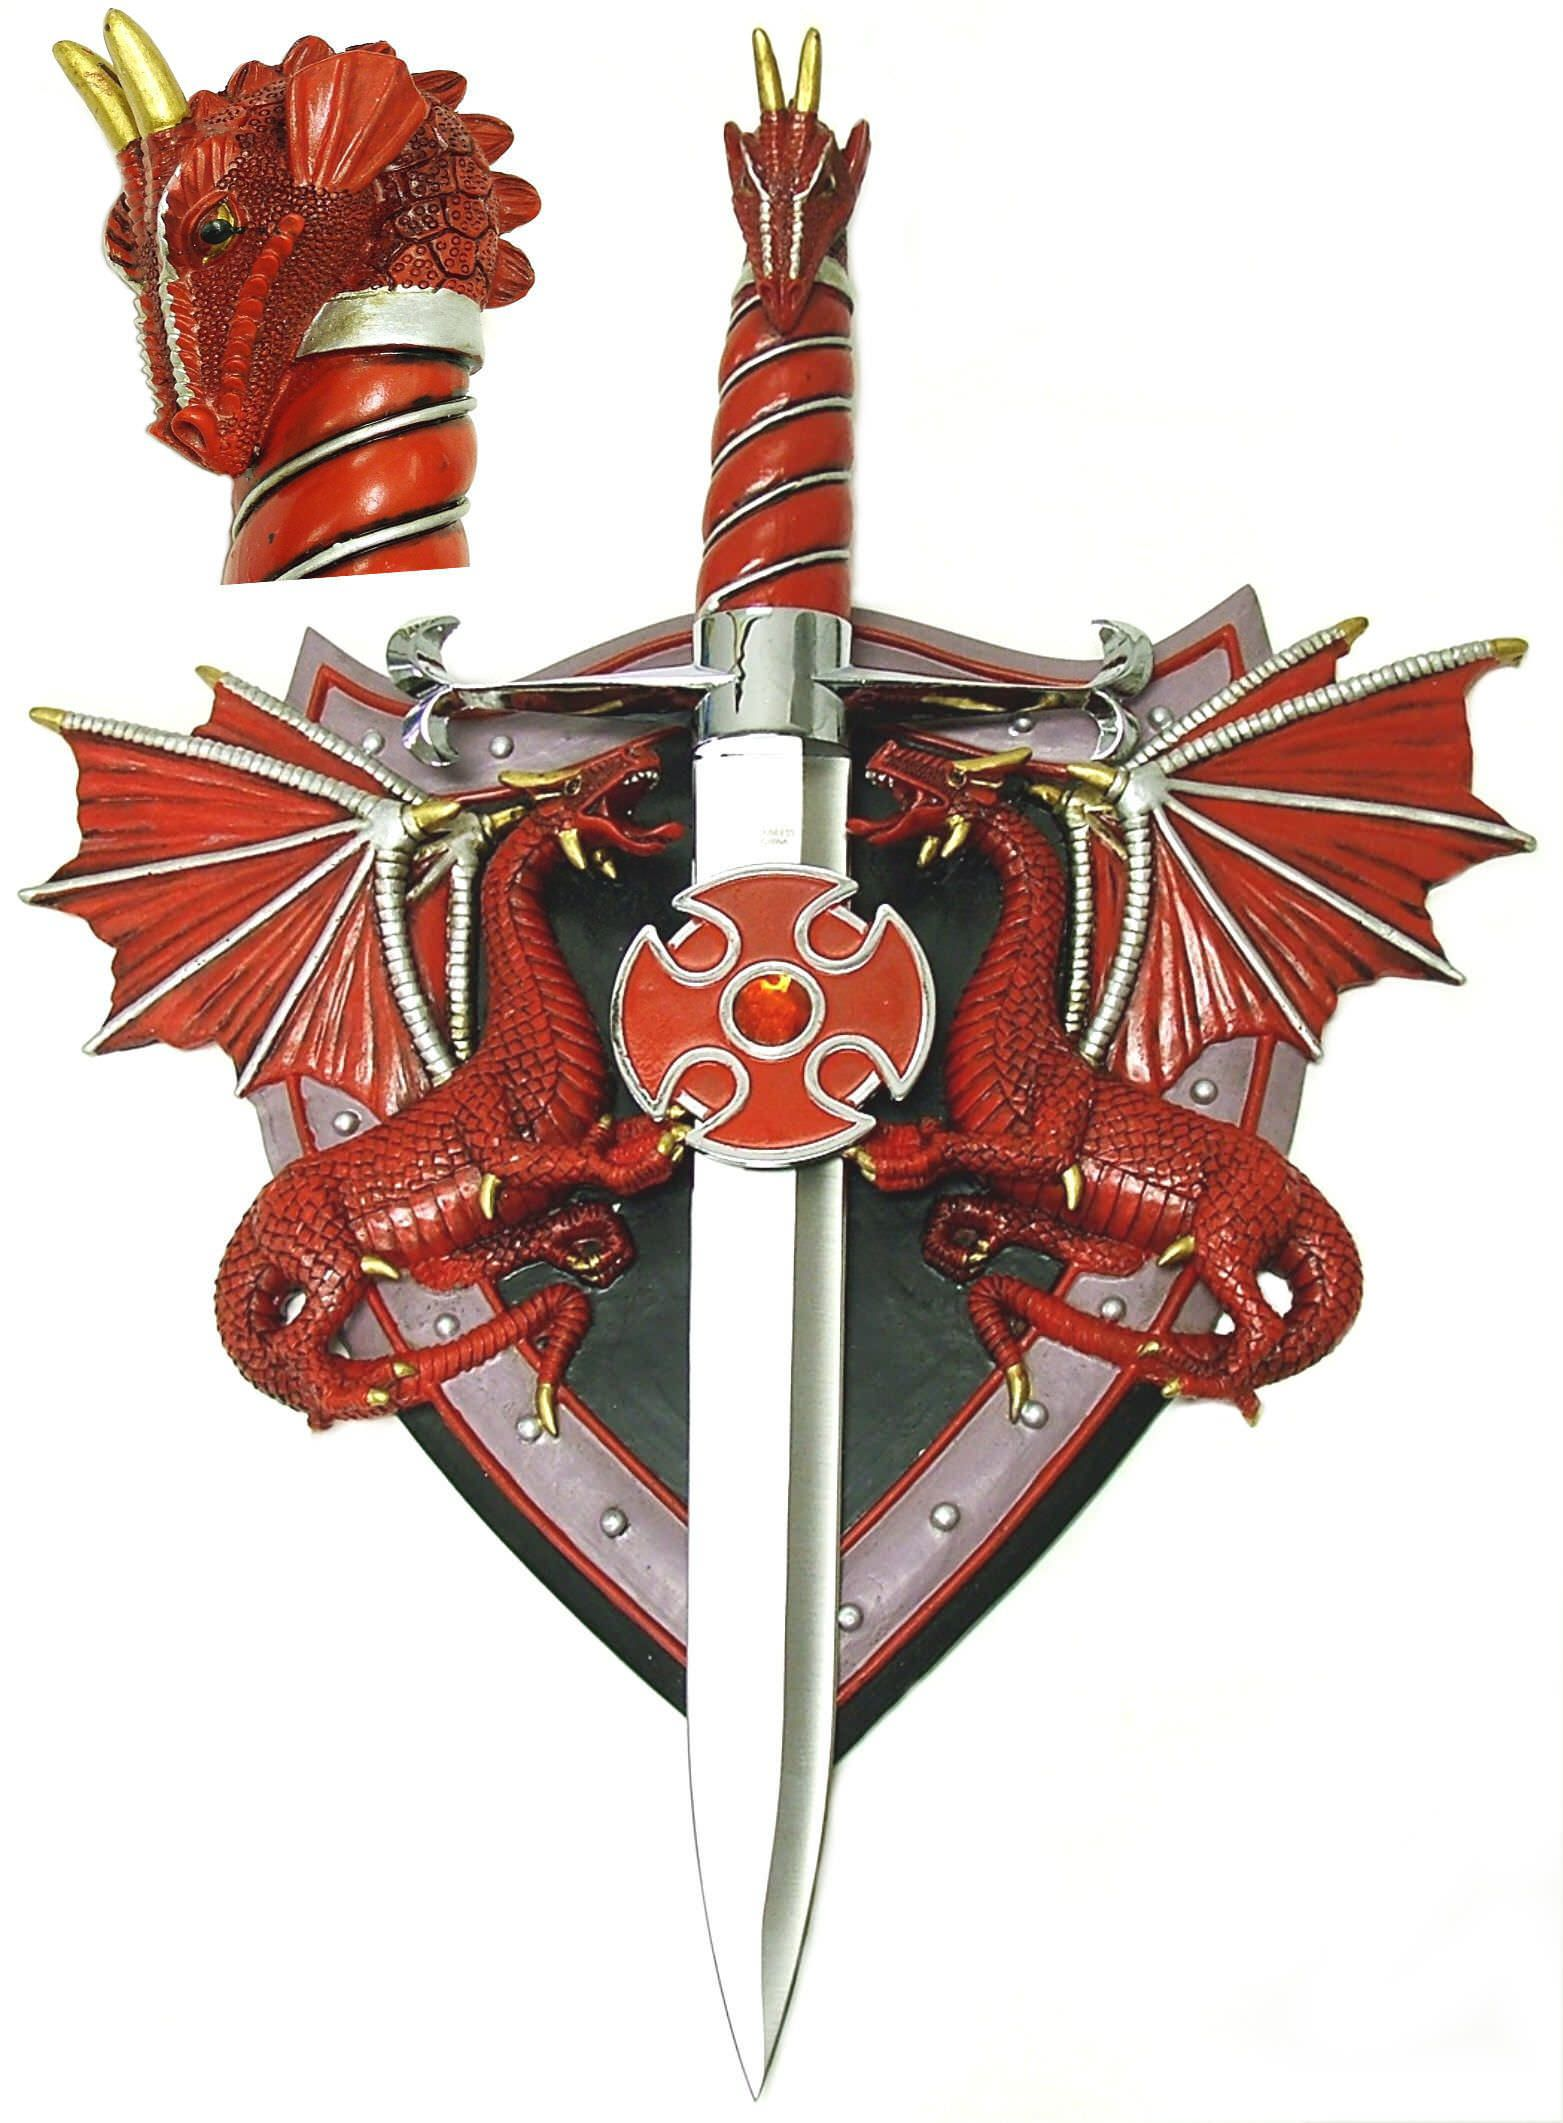 Dragon Sword Shield / Plaque KS5838